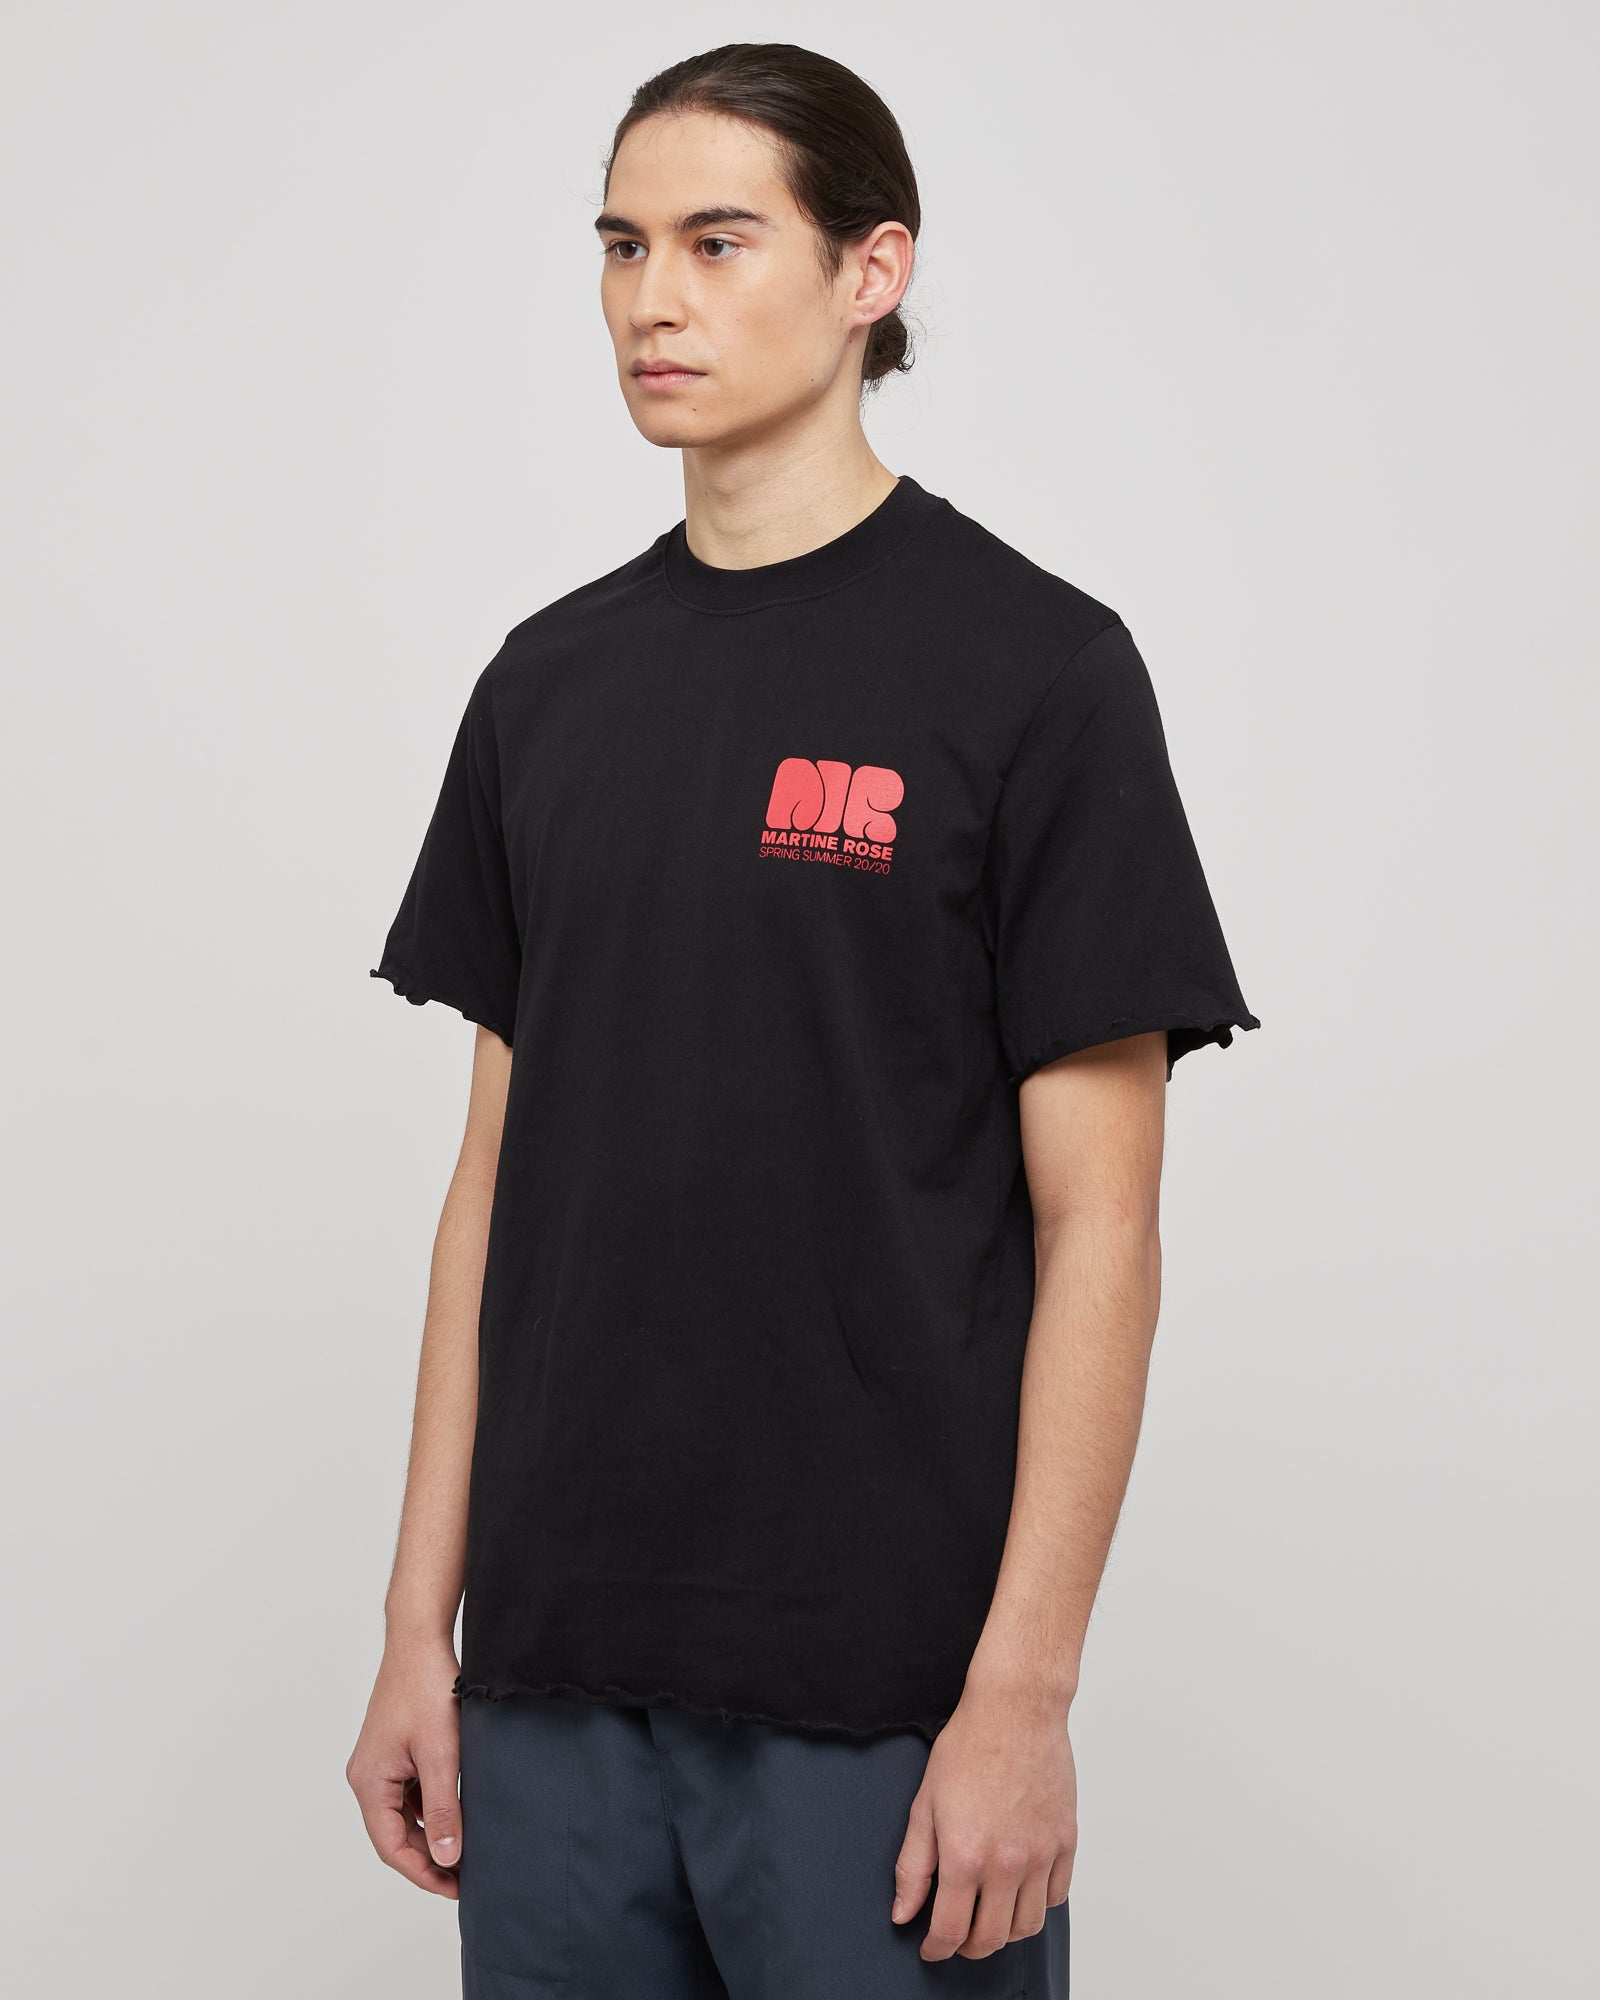 Lettuce Hem T-Shirt in Black